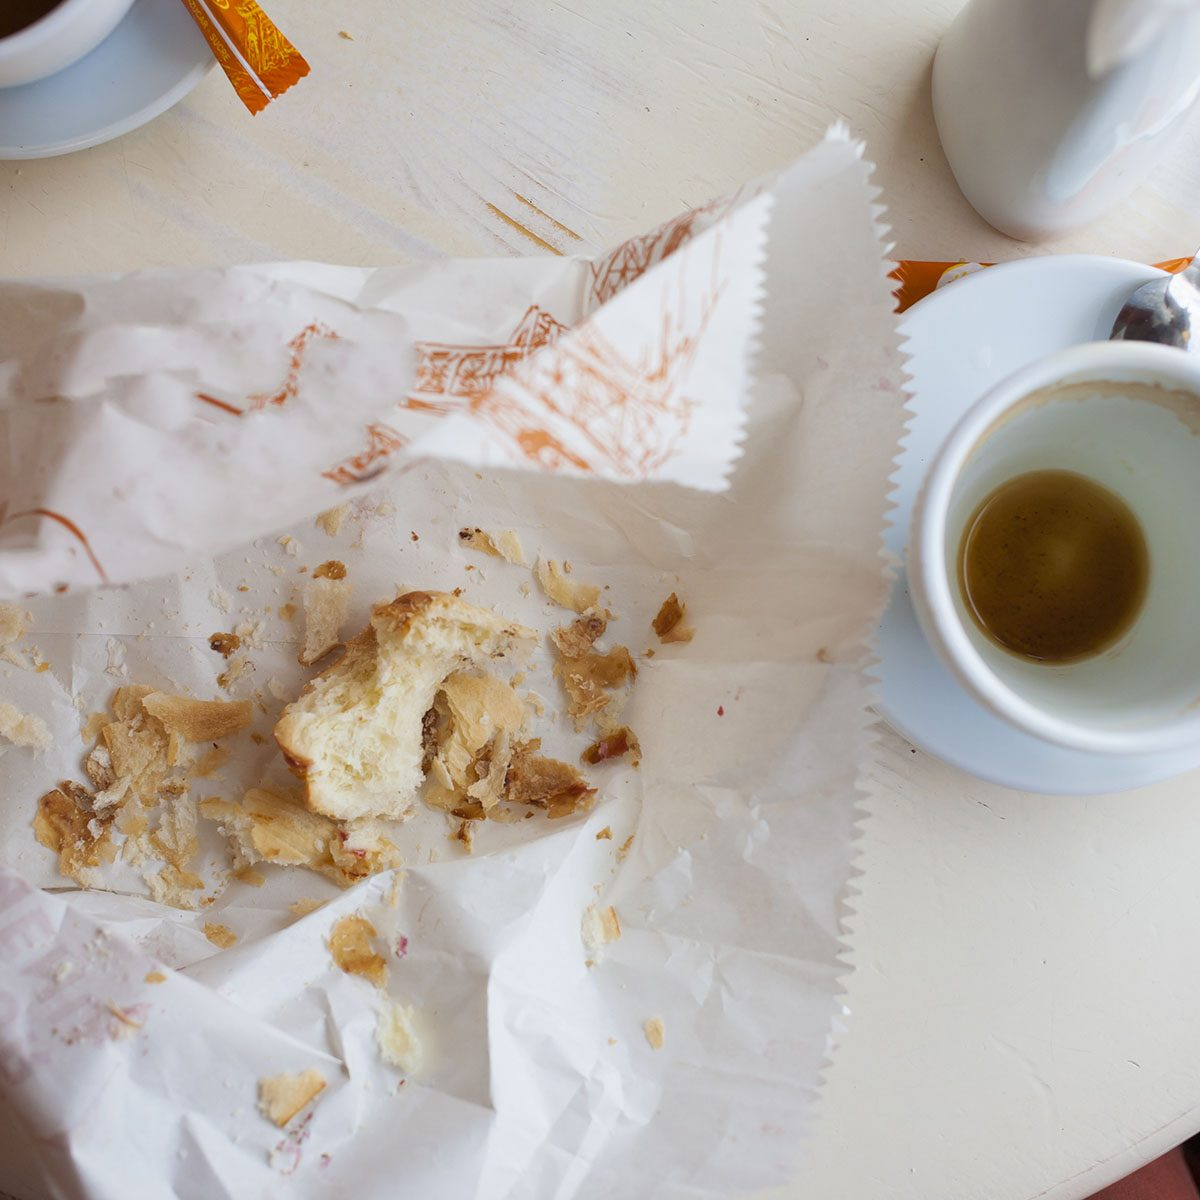 Empty coffee Cup and the remains of biscuits are on the table.